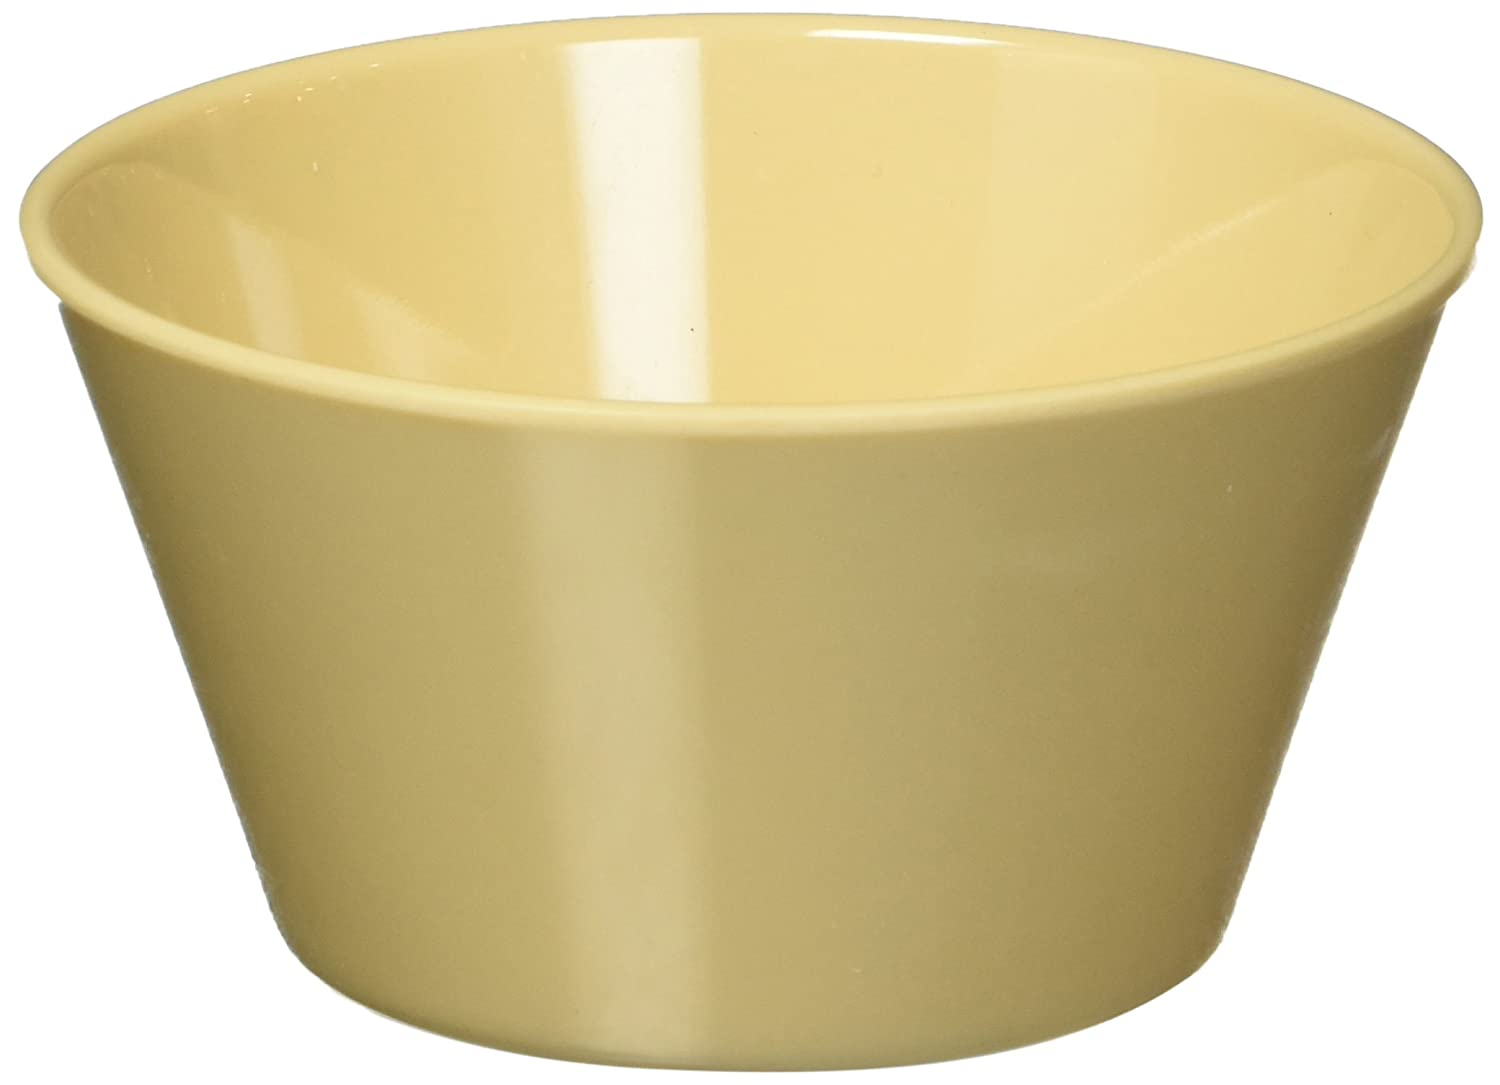 Winco MMB-8 Melamine Bouillon Cup, 8-Ounce, Tan Winco USA